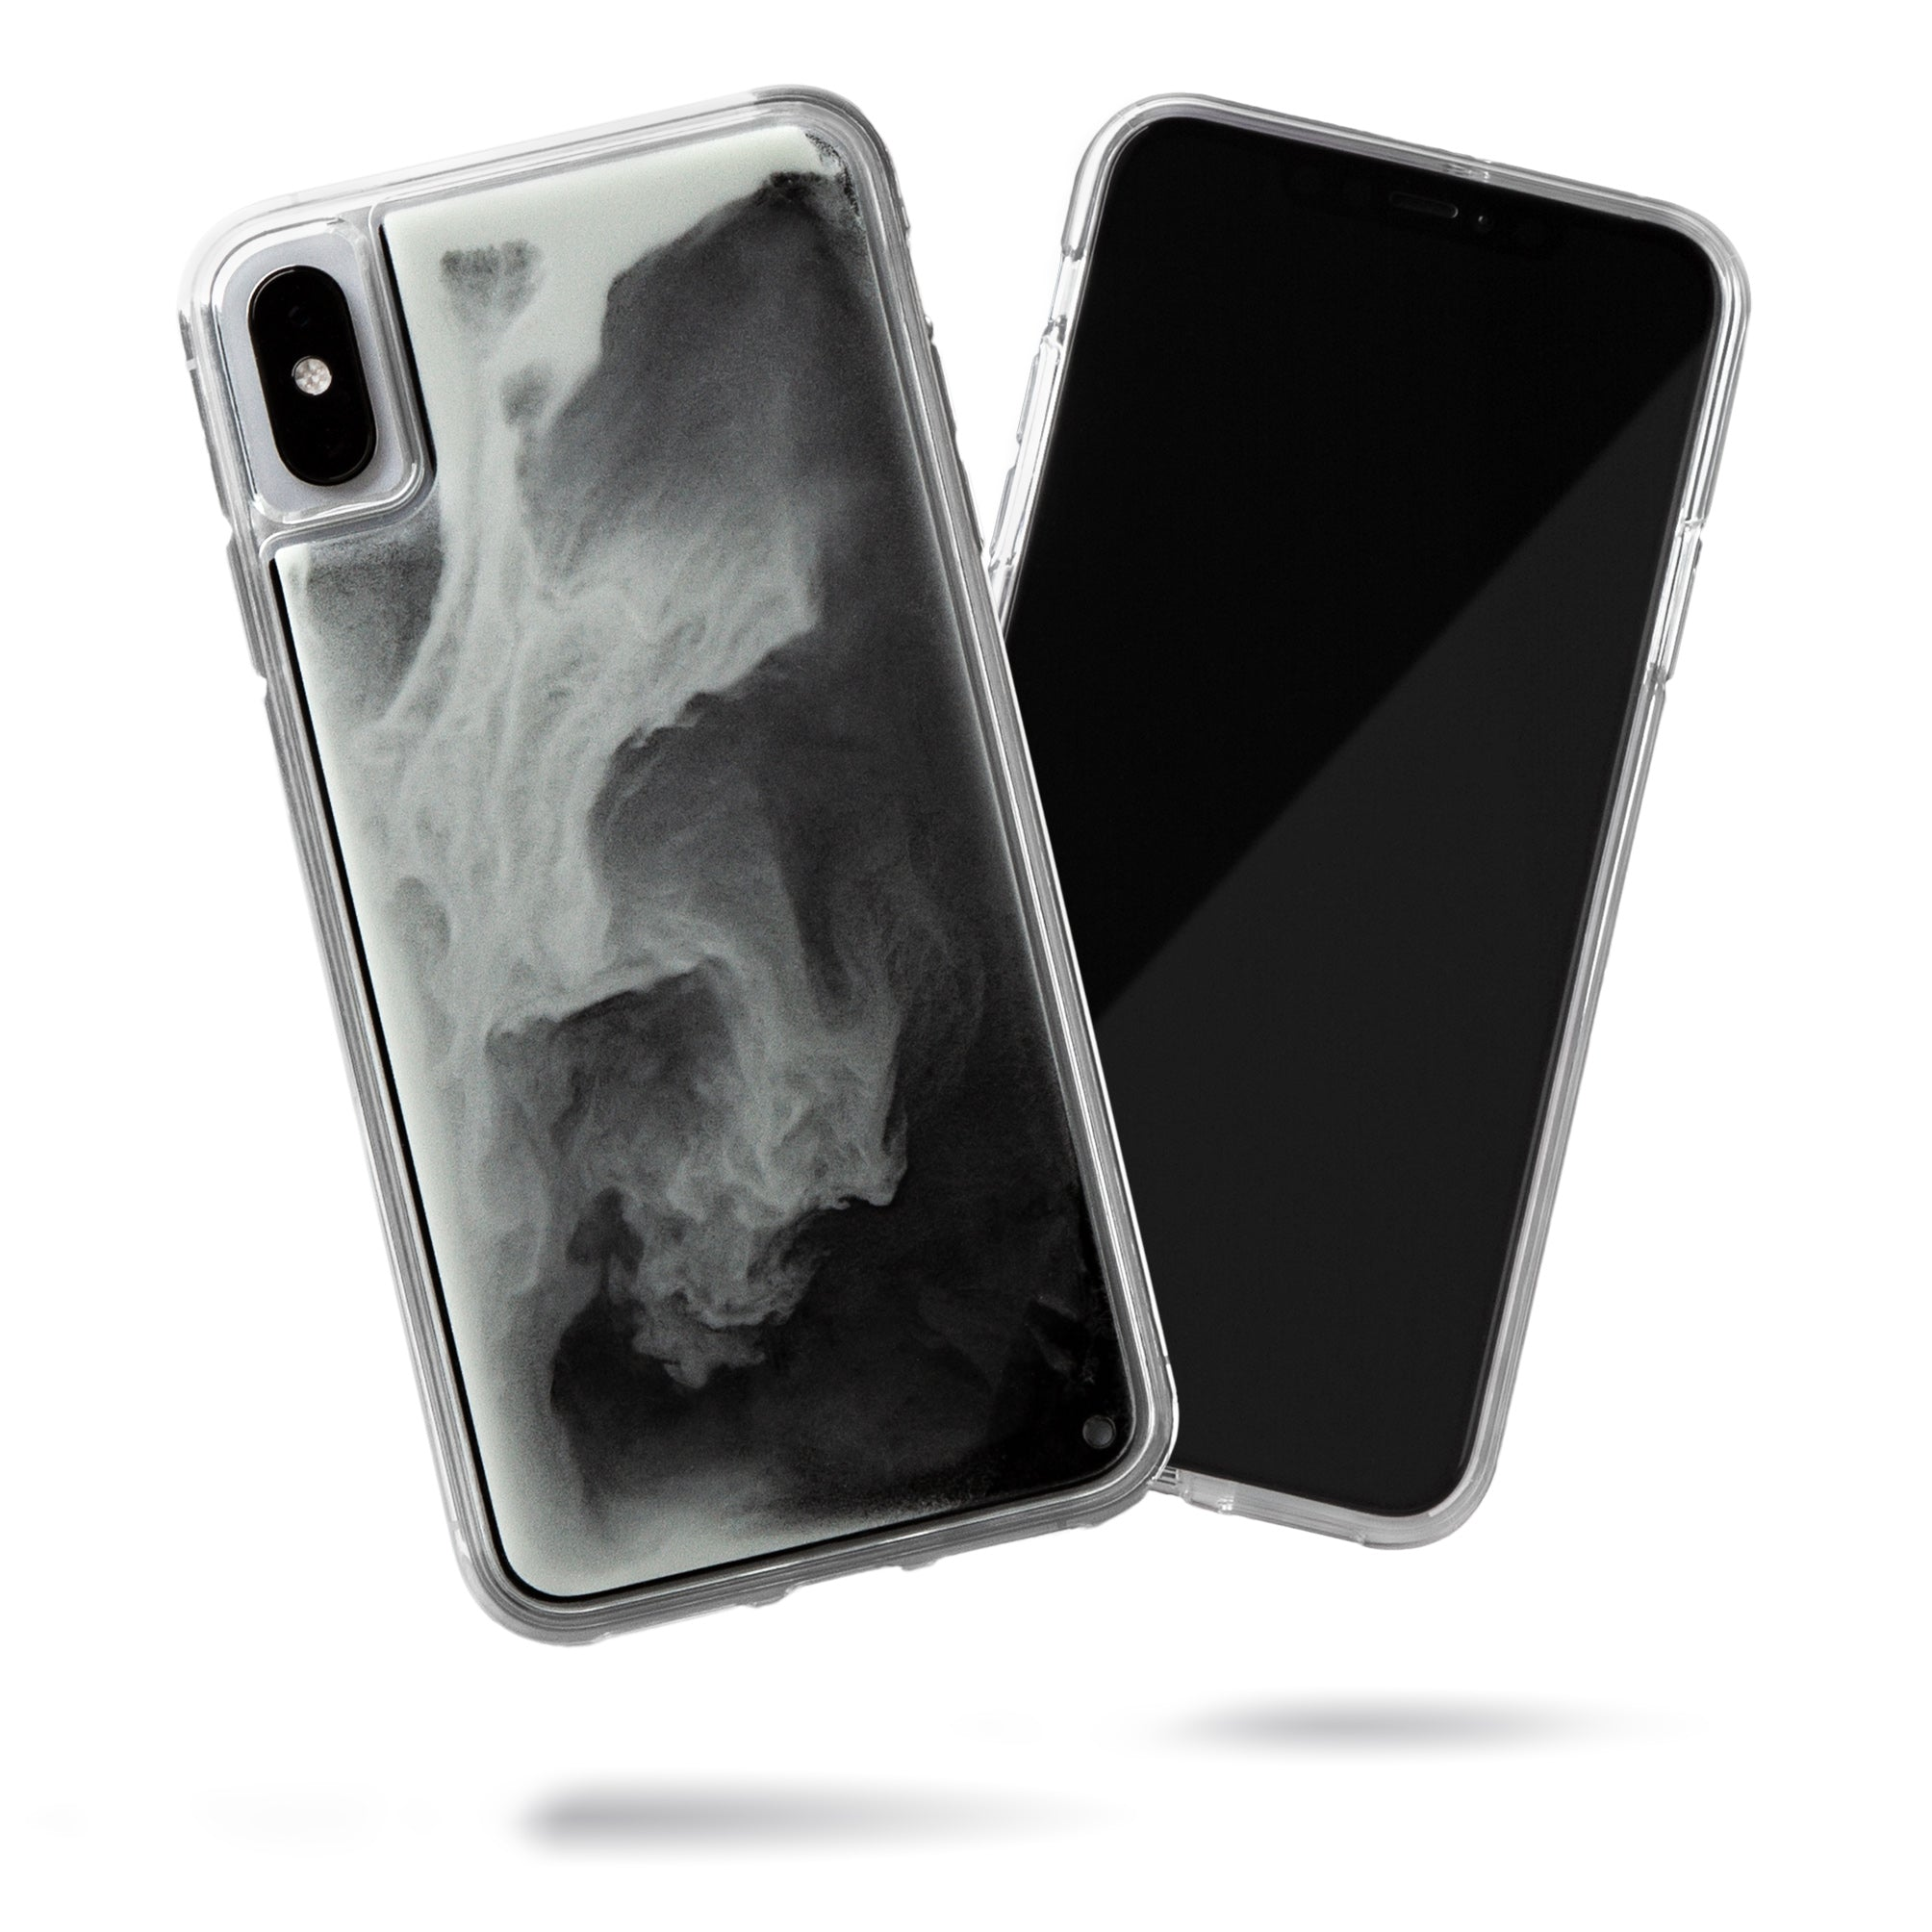 Neon Sand iPhone Xs Max Case - Hi Contrast Black n White